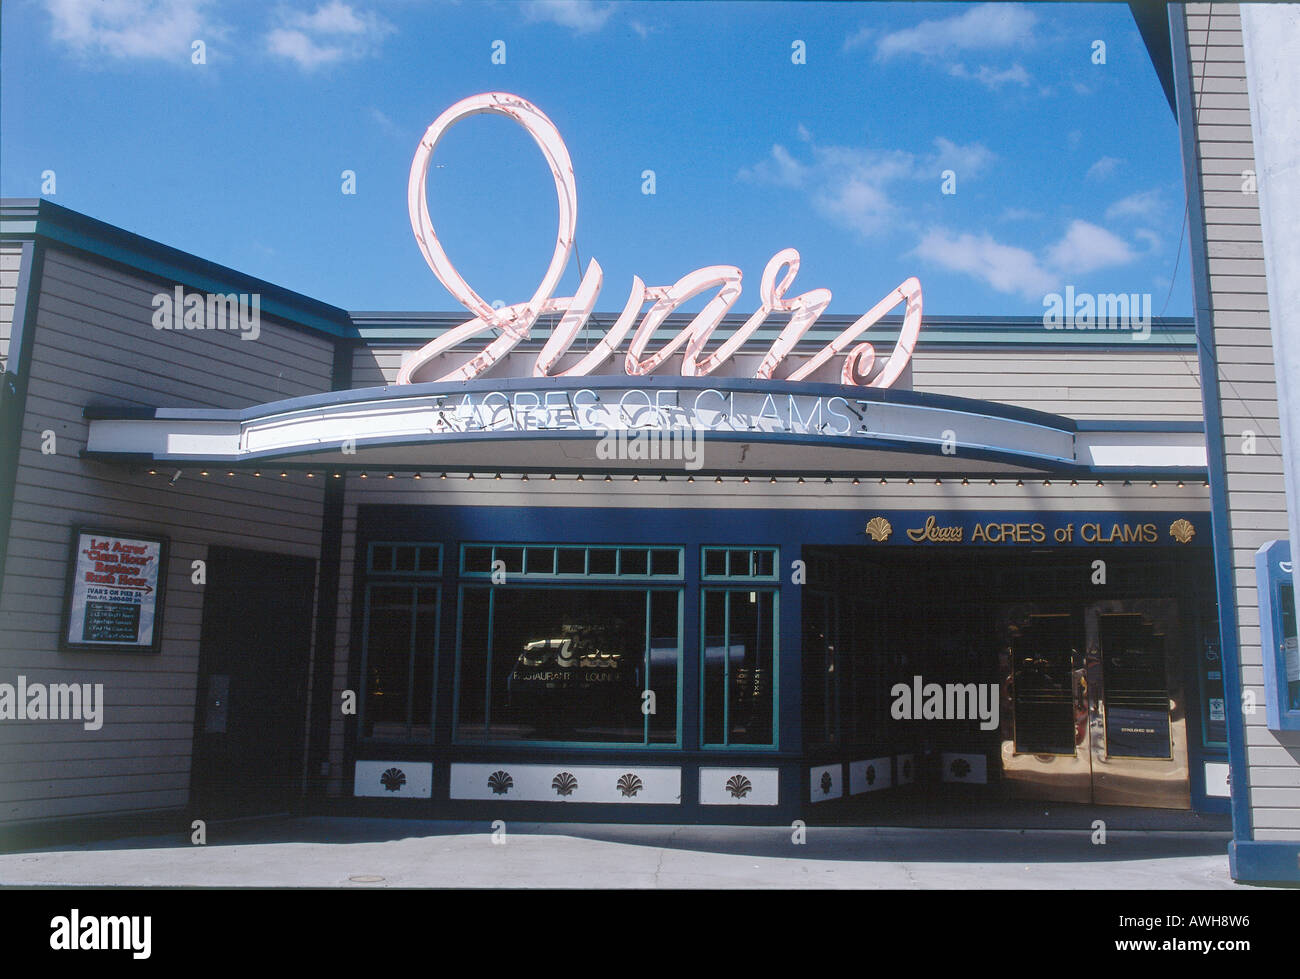 USA, Pacific Northwest, Washington State, Seattle, Ivar's Acres of Clams, unlit neon sign on roof above façade and entrance - Stock Image